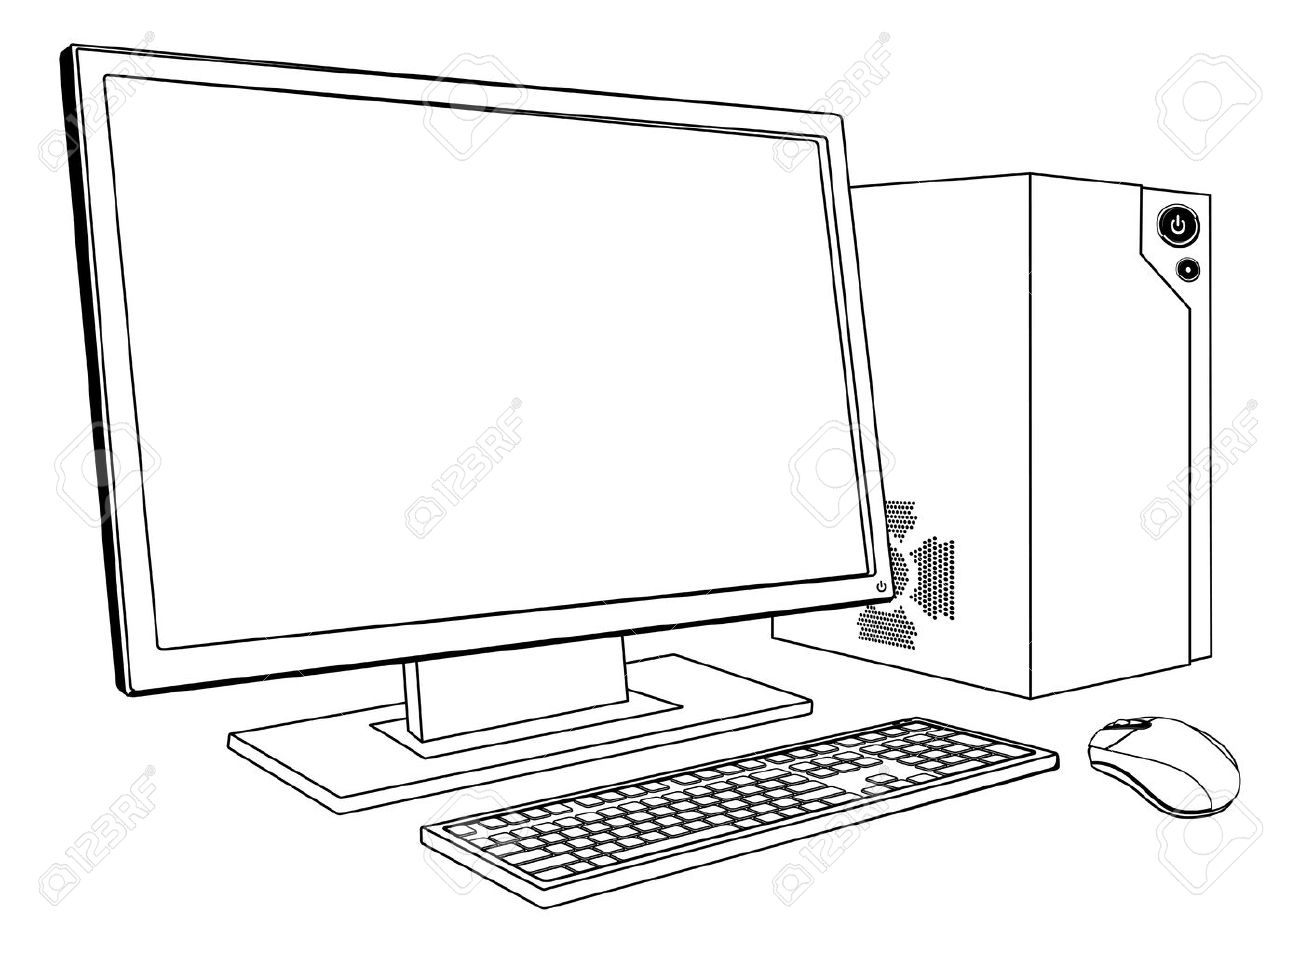 A black and white illustration of desktop PC computer workstation.